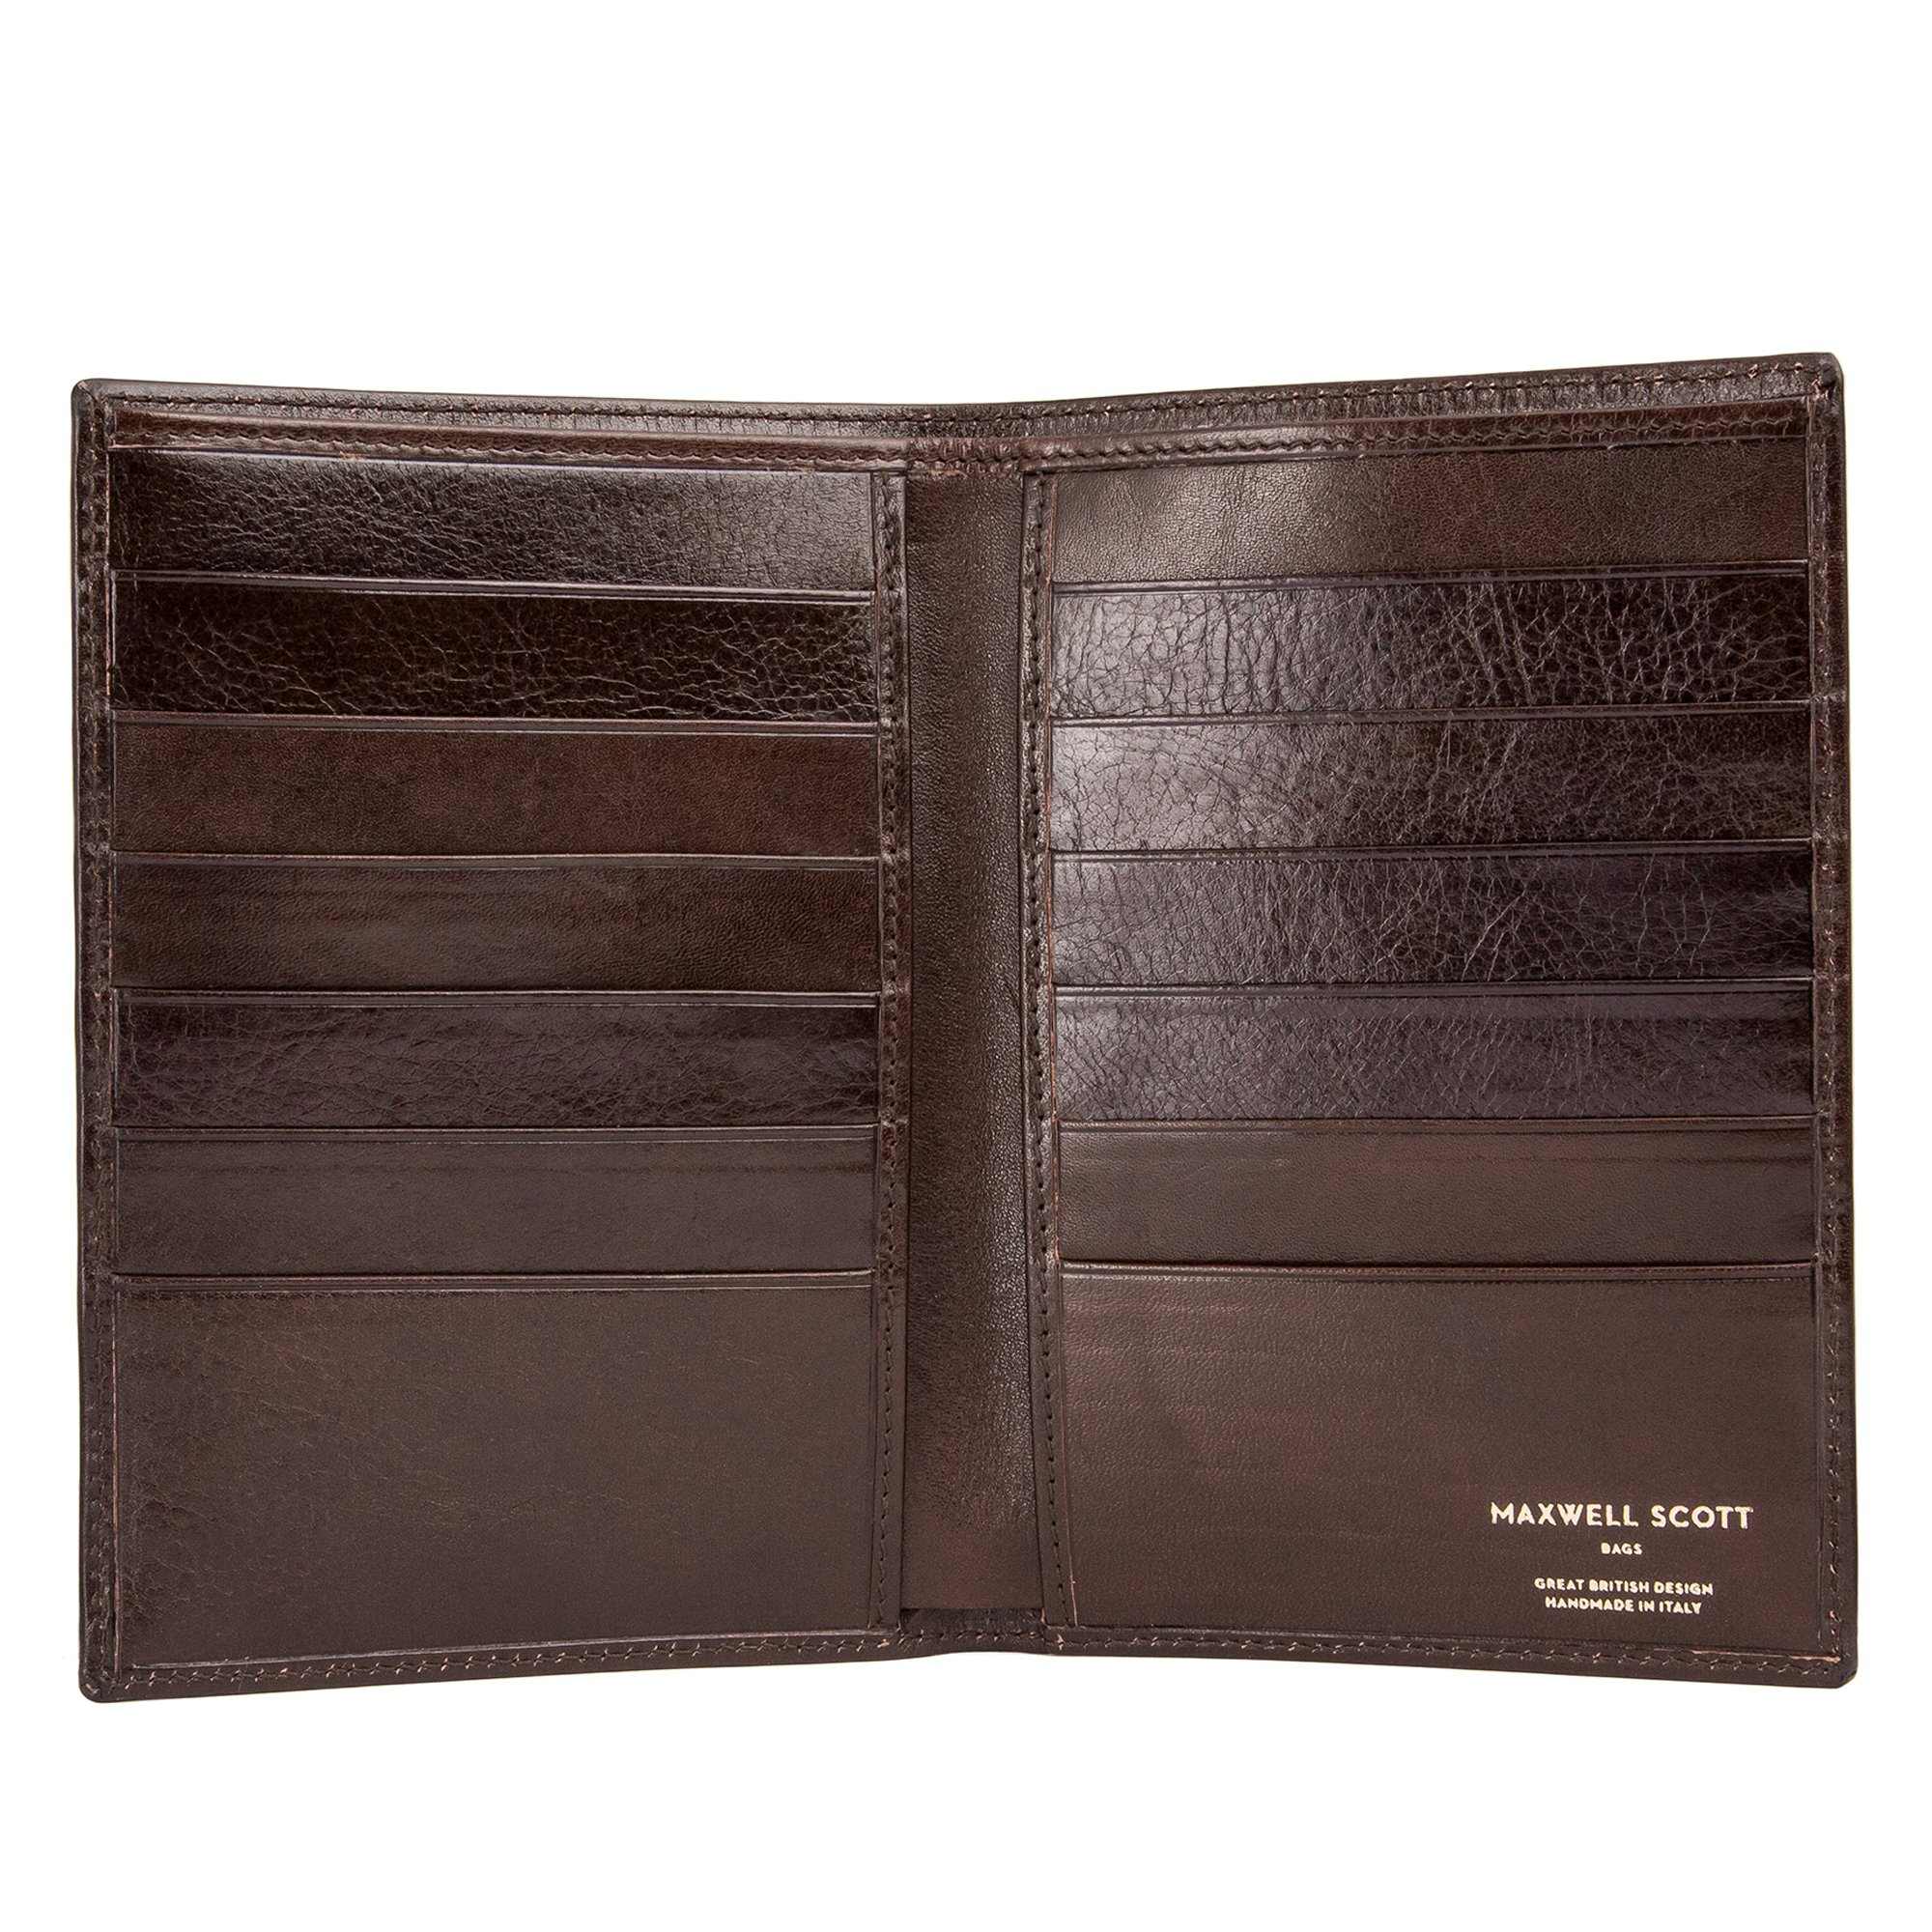 Maxwell Scott Personalized Luxury Brown Leather Dress Wallet - One Size (The Pianillo)